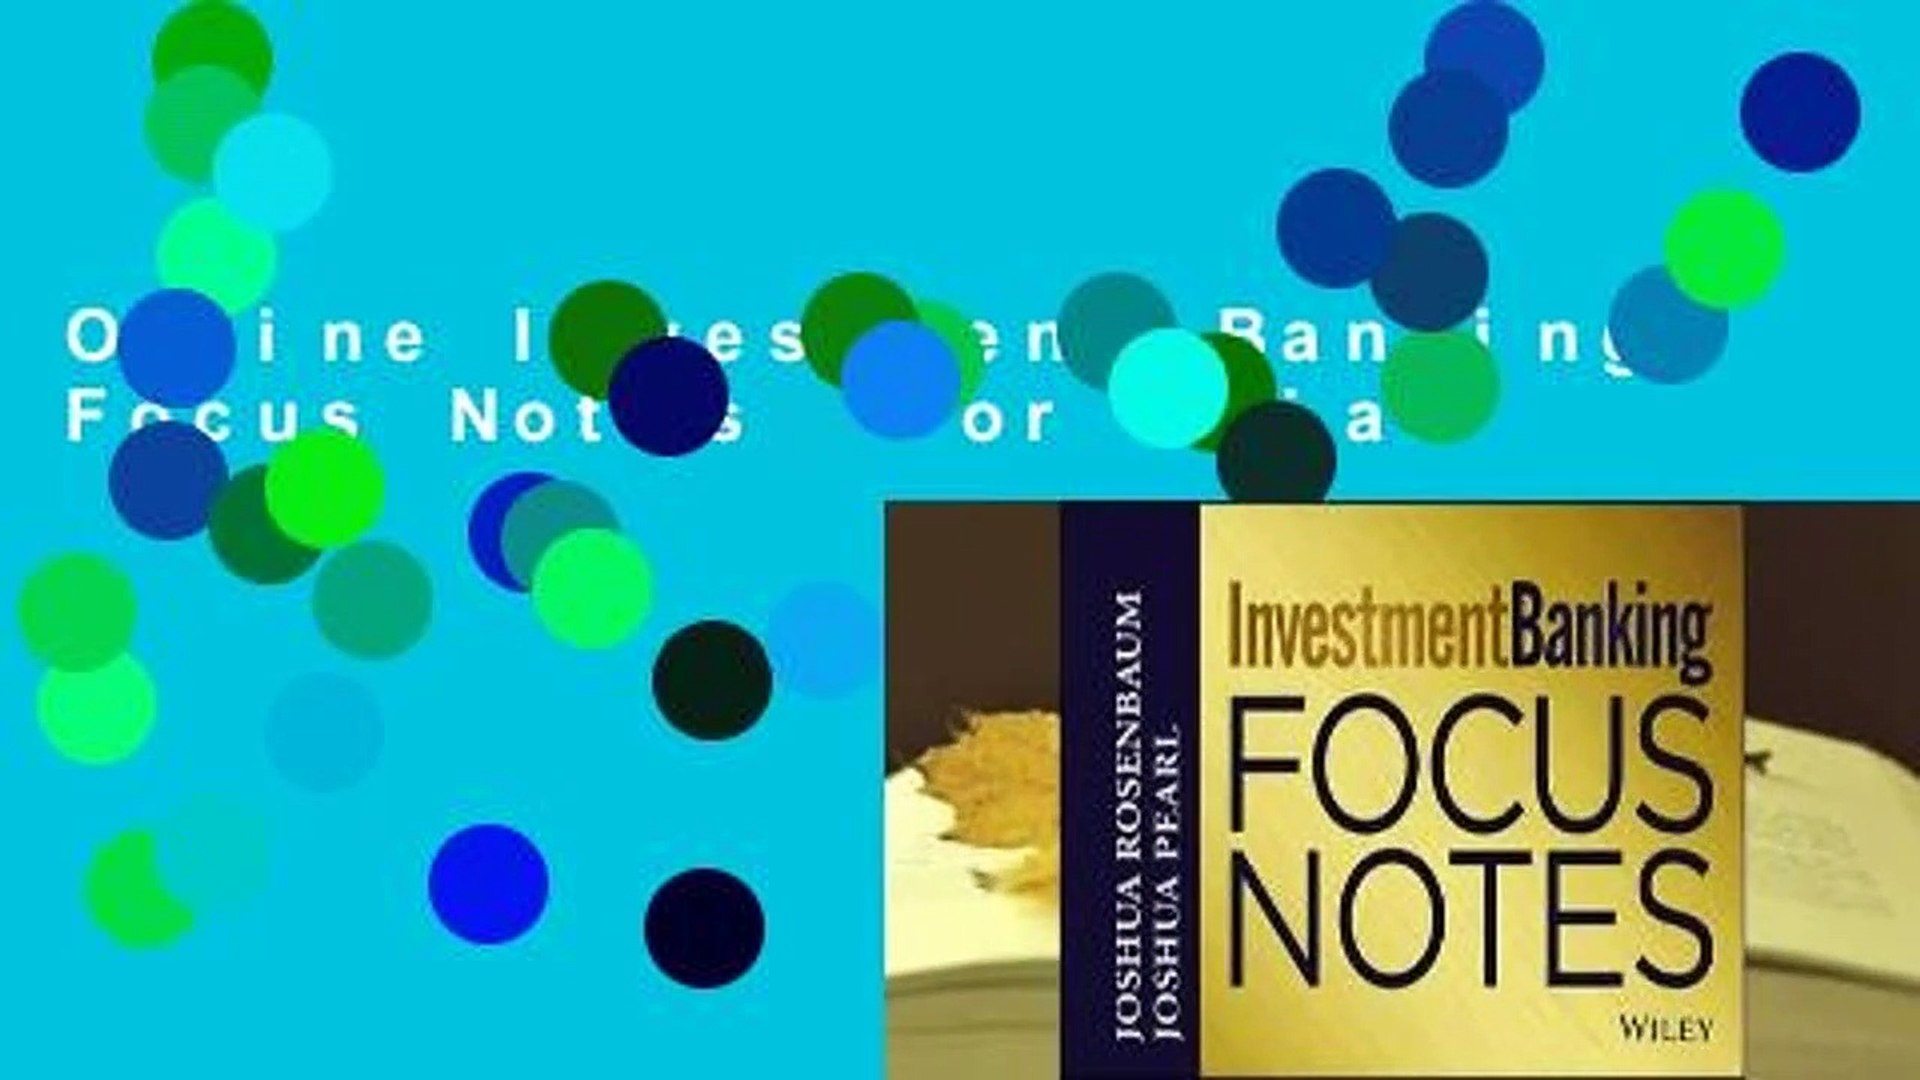 Online Investment Banking Focus Notes  For Trial